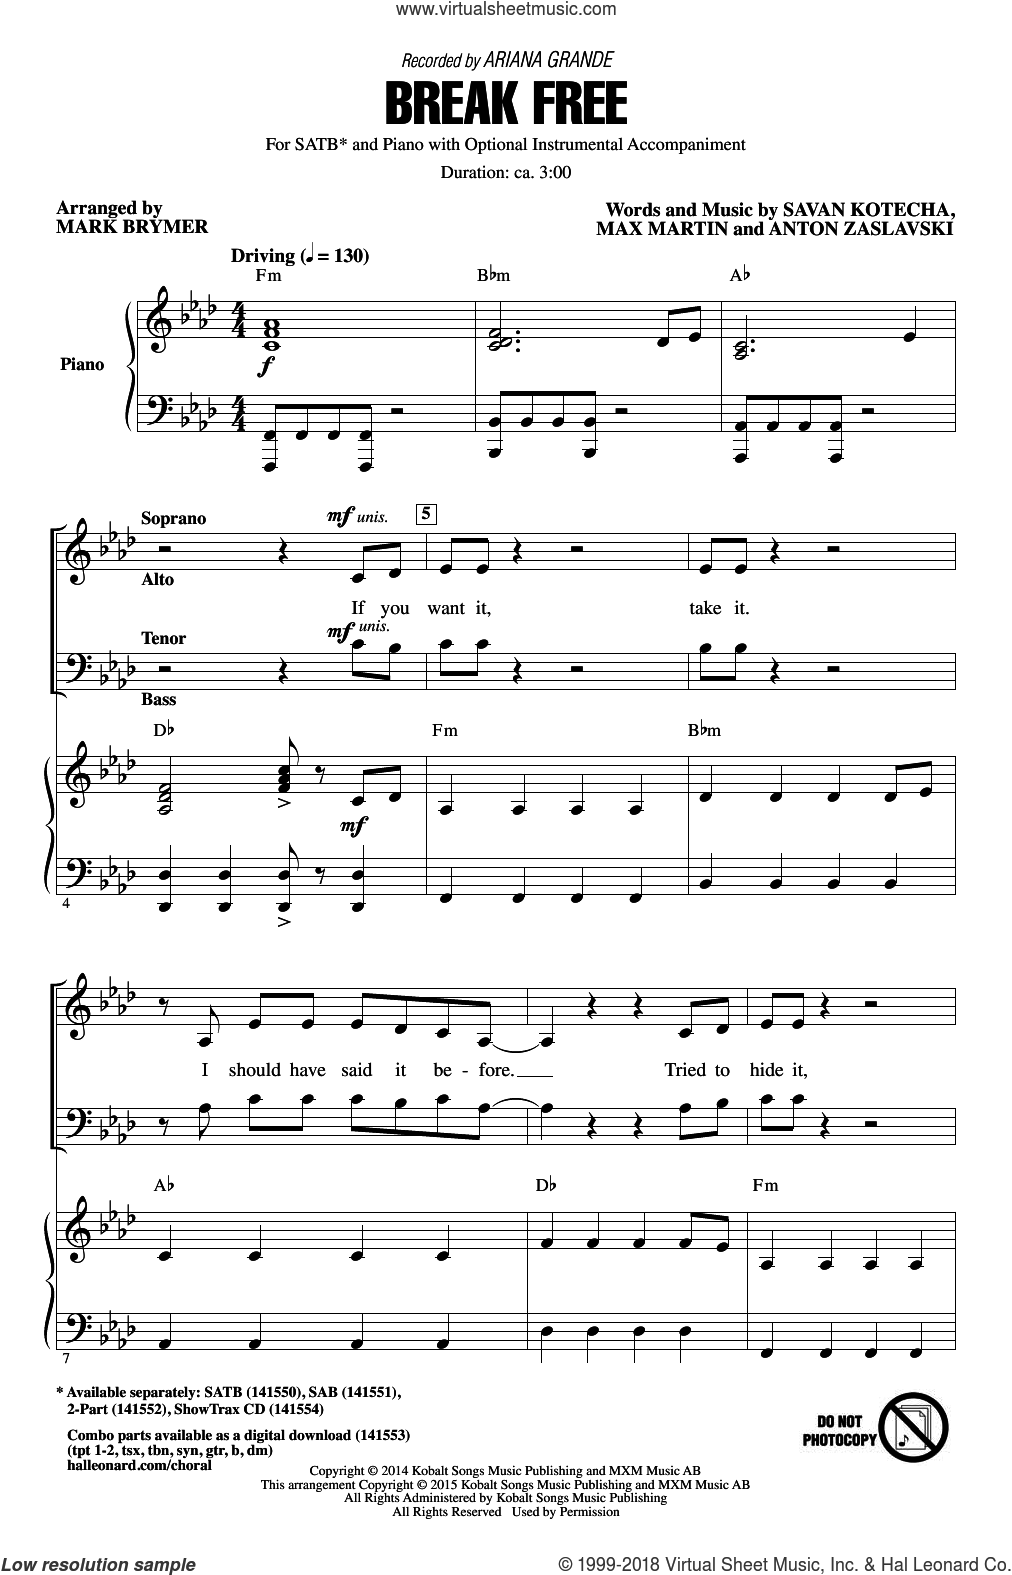 Break Free sheet music for choir (SATB: soprano, alto, tenor, bass) by Mark Brymer, Ariana Grande, Ariana Grande feat. Zedd, Anton Zaslavski, Max Martin and Savan Kotecha, intermediate skill level